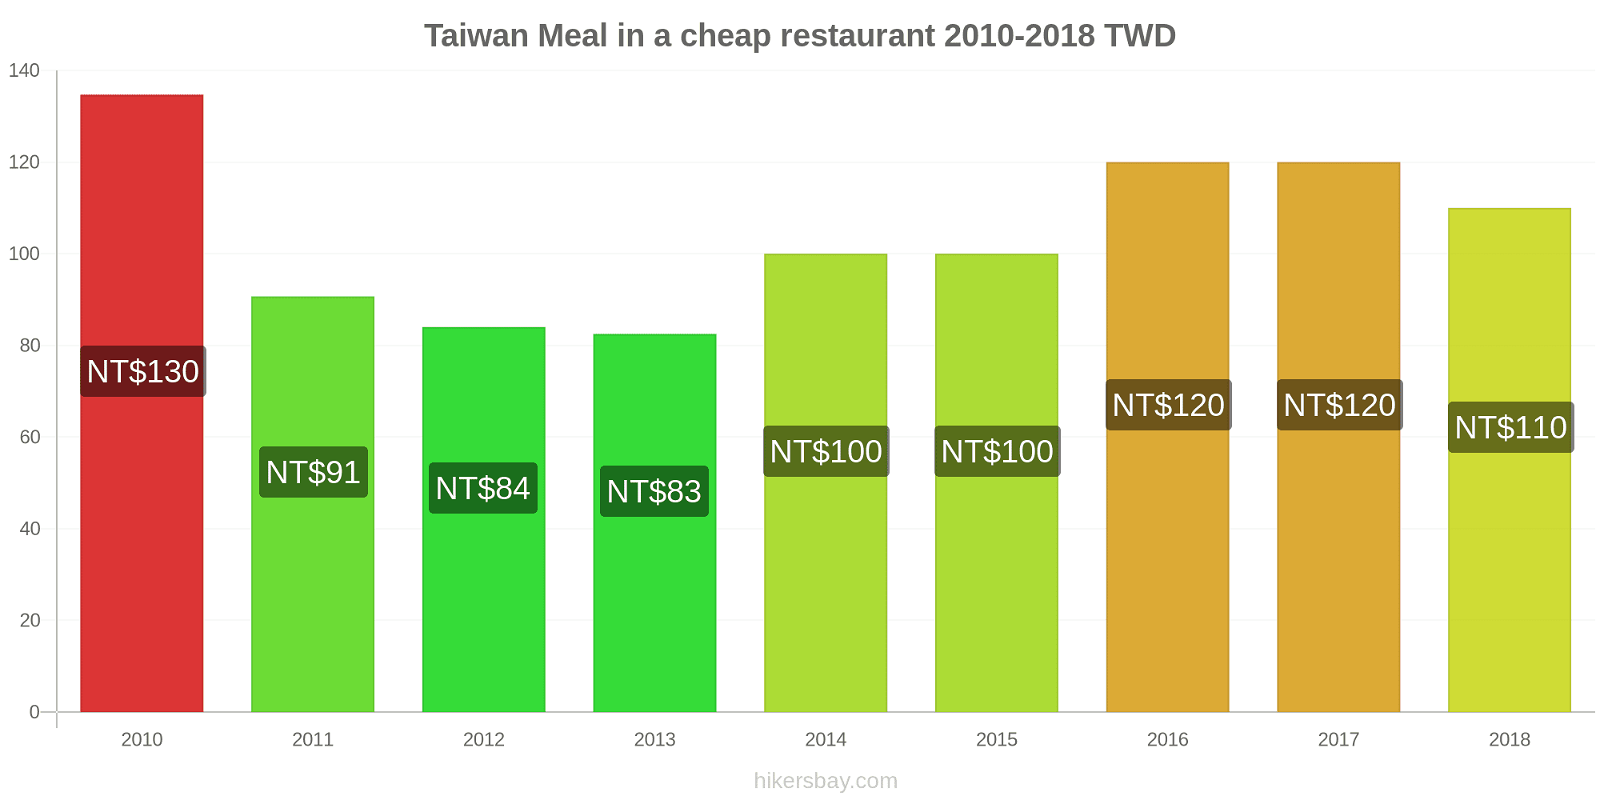 Taiwan price changes Meal in a cheap restaurant hikersbay.com